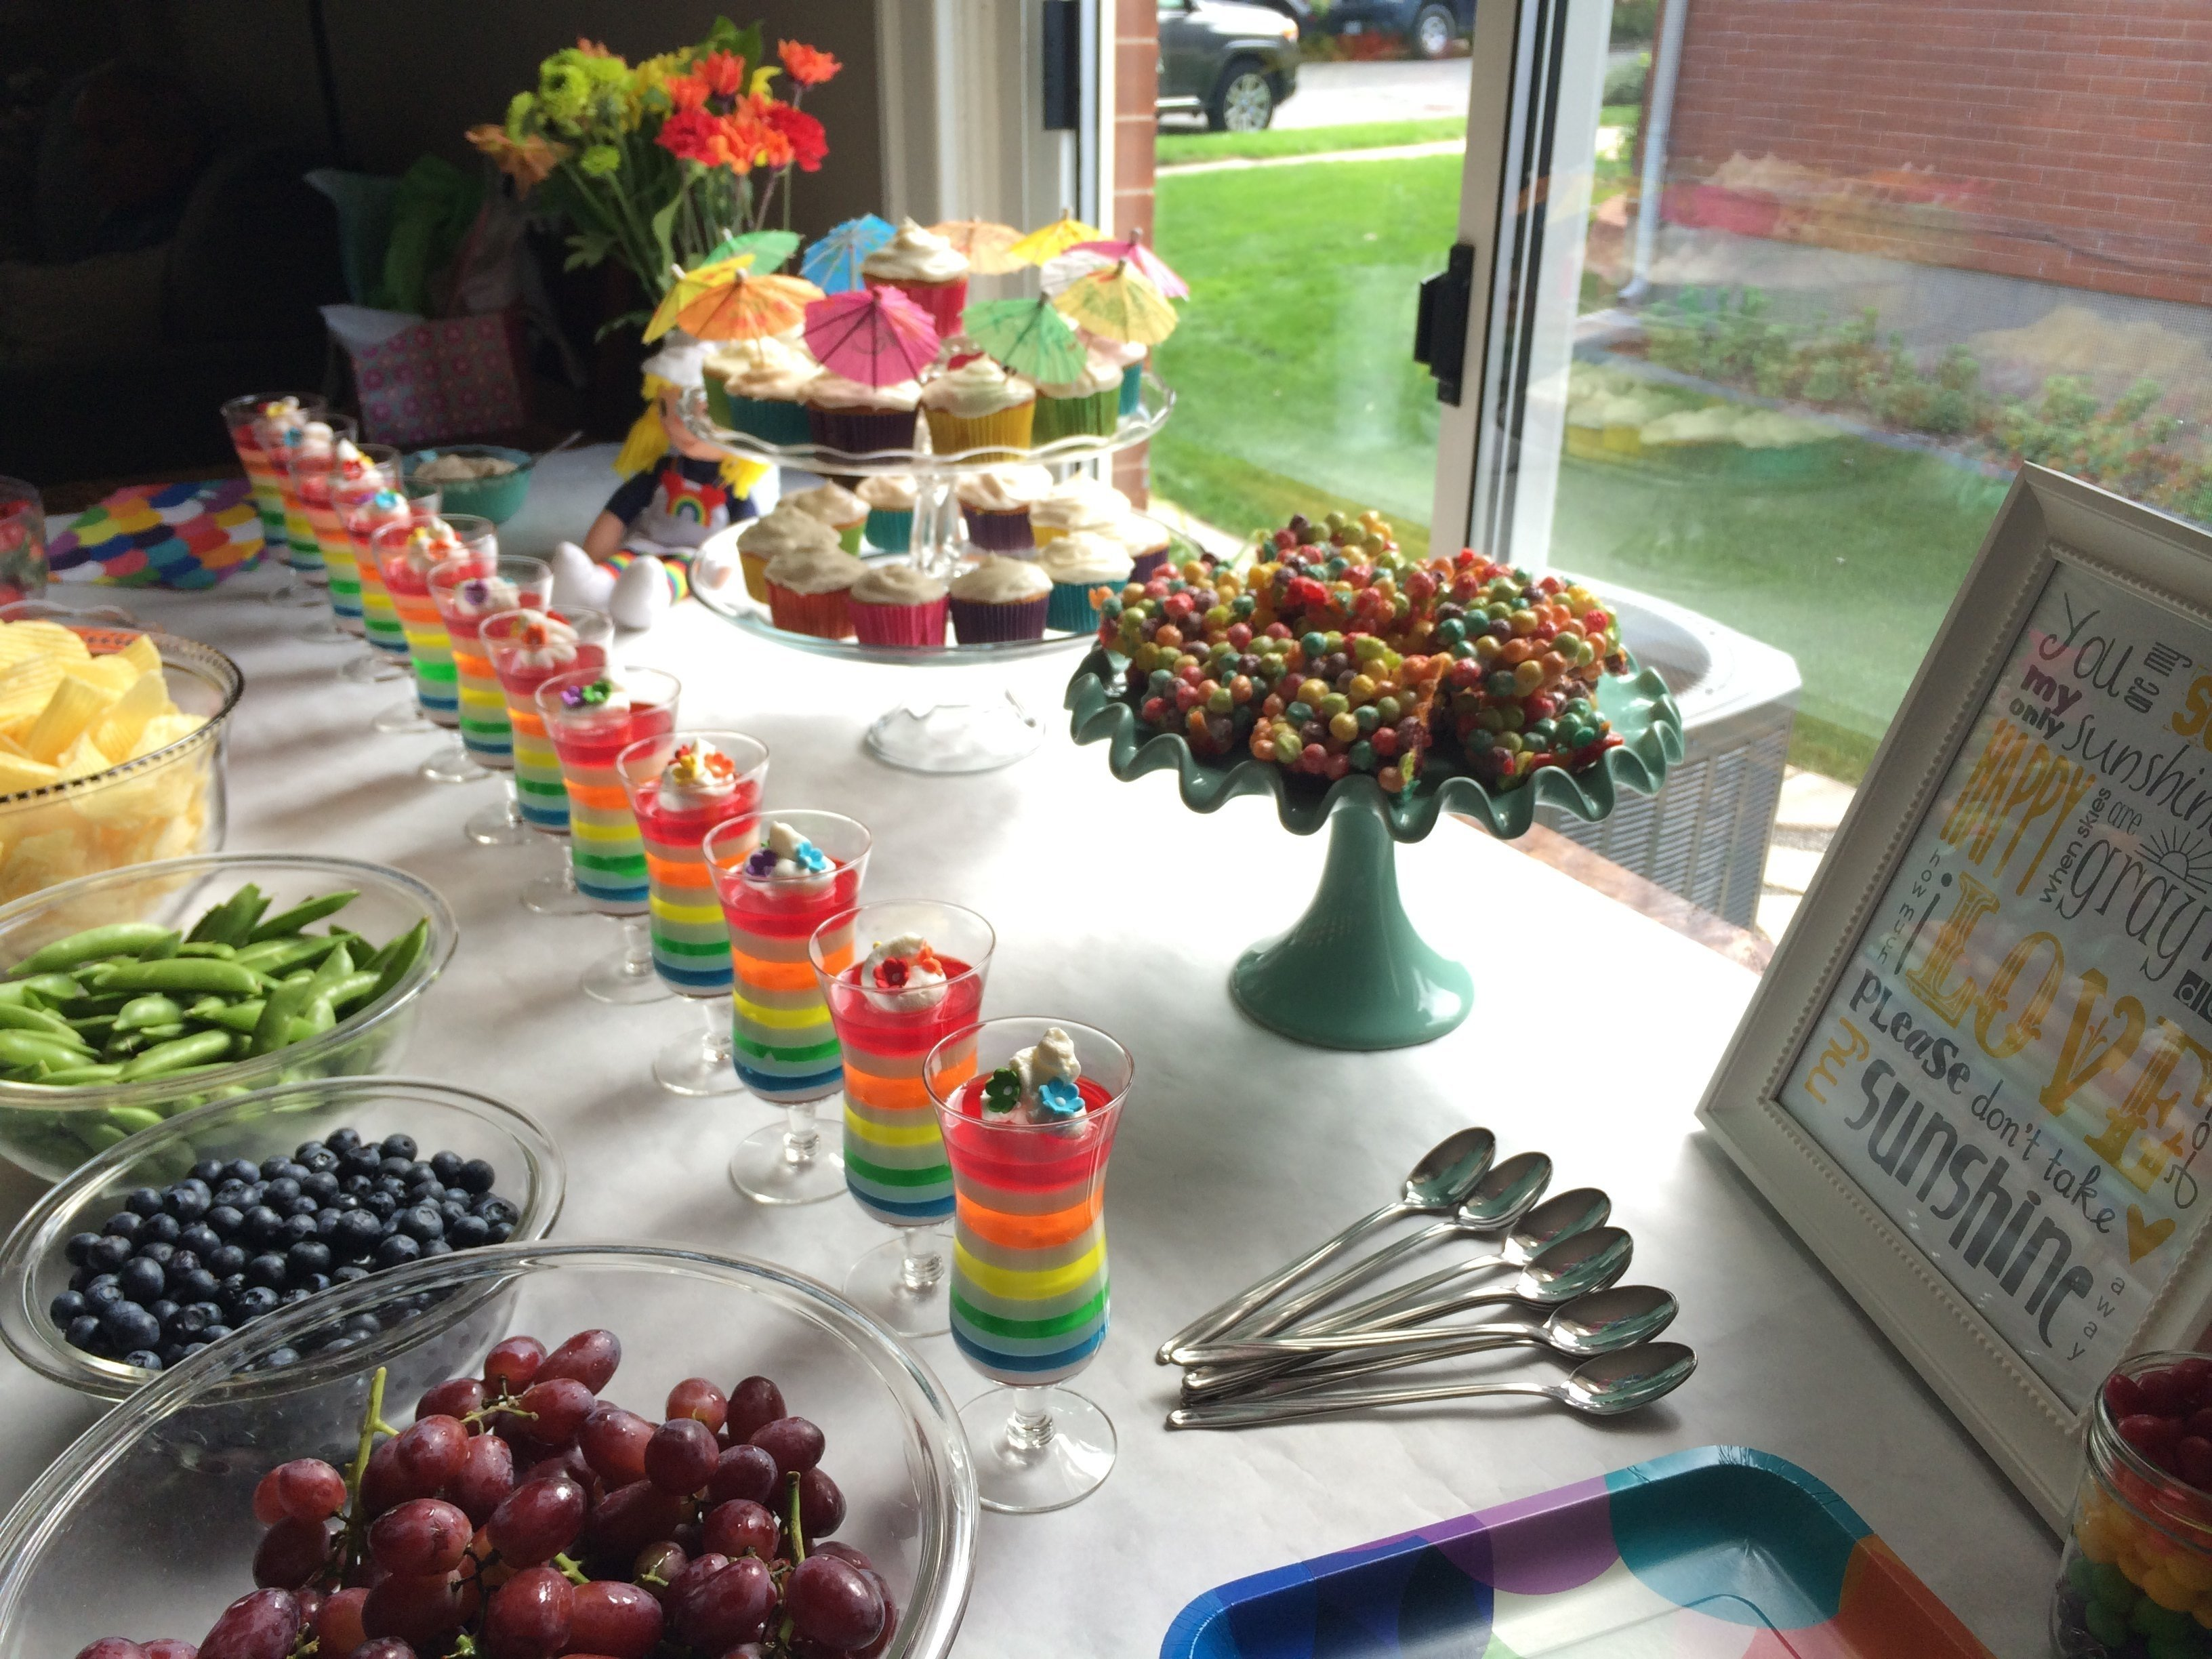 10 Great 14 Year Old Birthday Party Ideas peachy design birthday party game ideas for 7 year olds themes old 5 2021